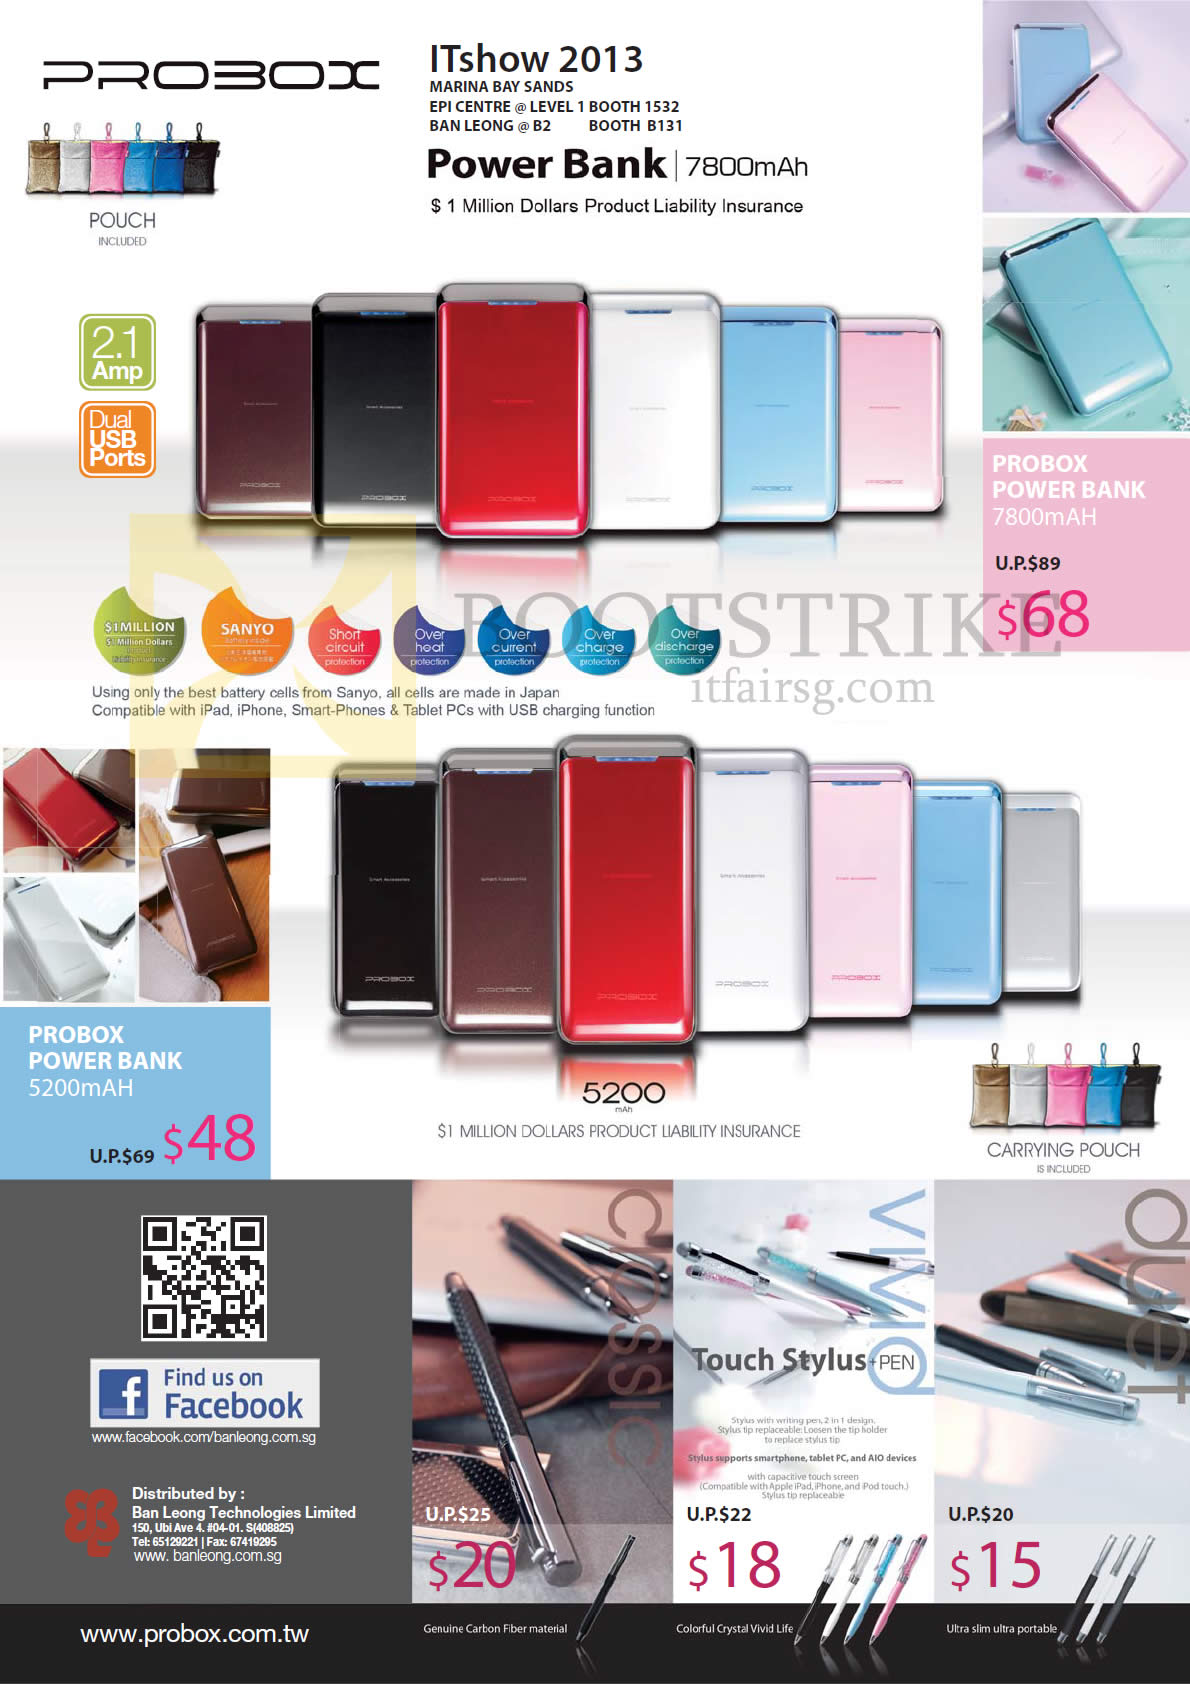 IT SHOW 2013 price list image brochure of ProBox Portable Chargers Power Bank, Touch Stylus Pen